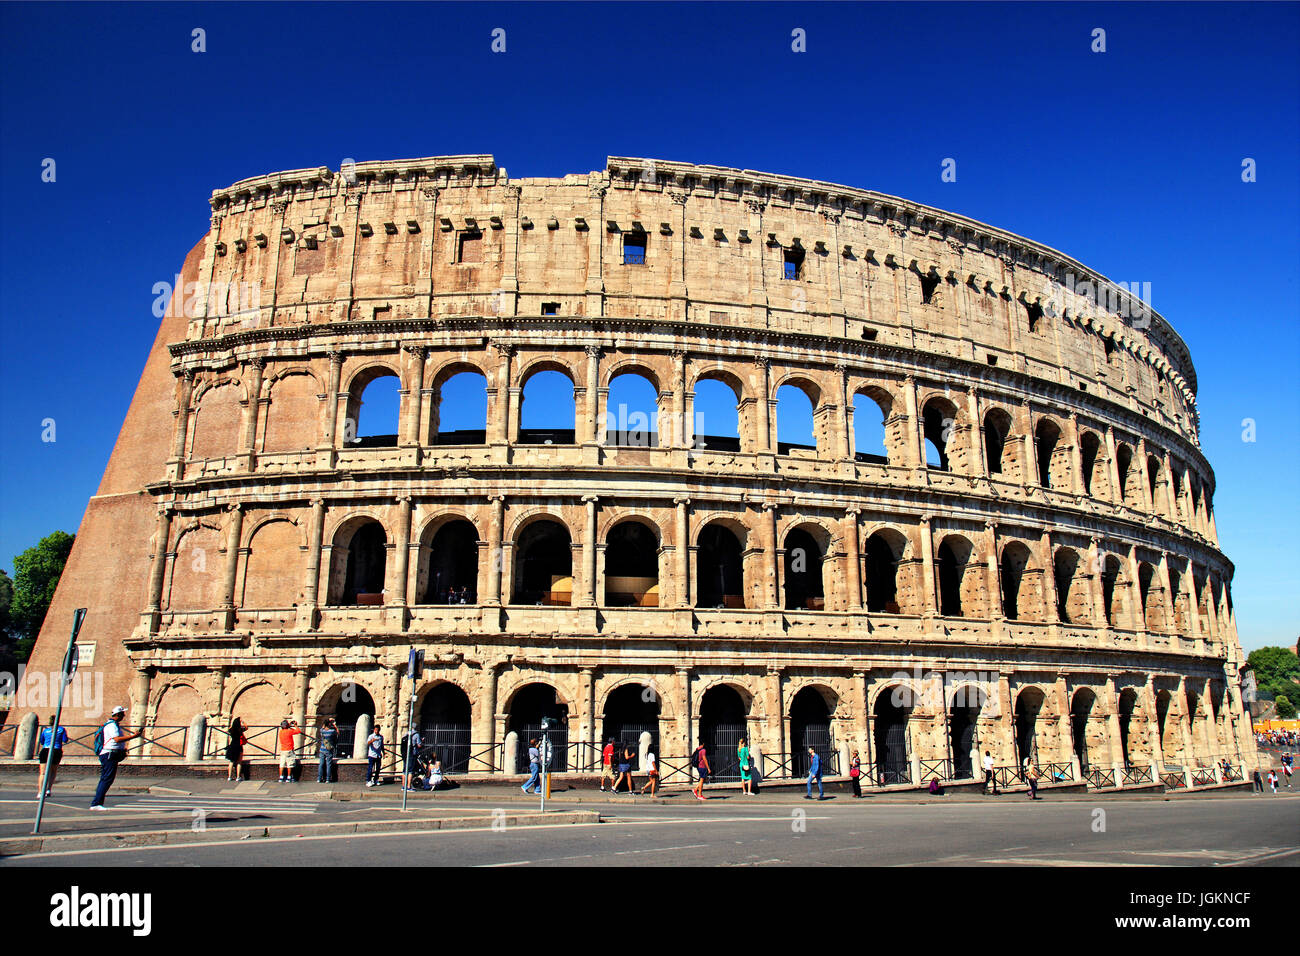 """The Colosseum (""""Colosseo""""), also known as the """"Flavian Amphitheatre""""), Rome, Italy Stock Photo"""